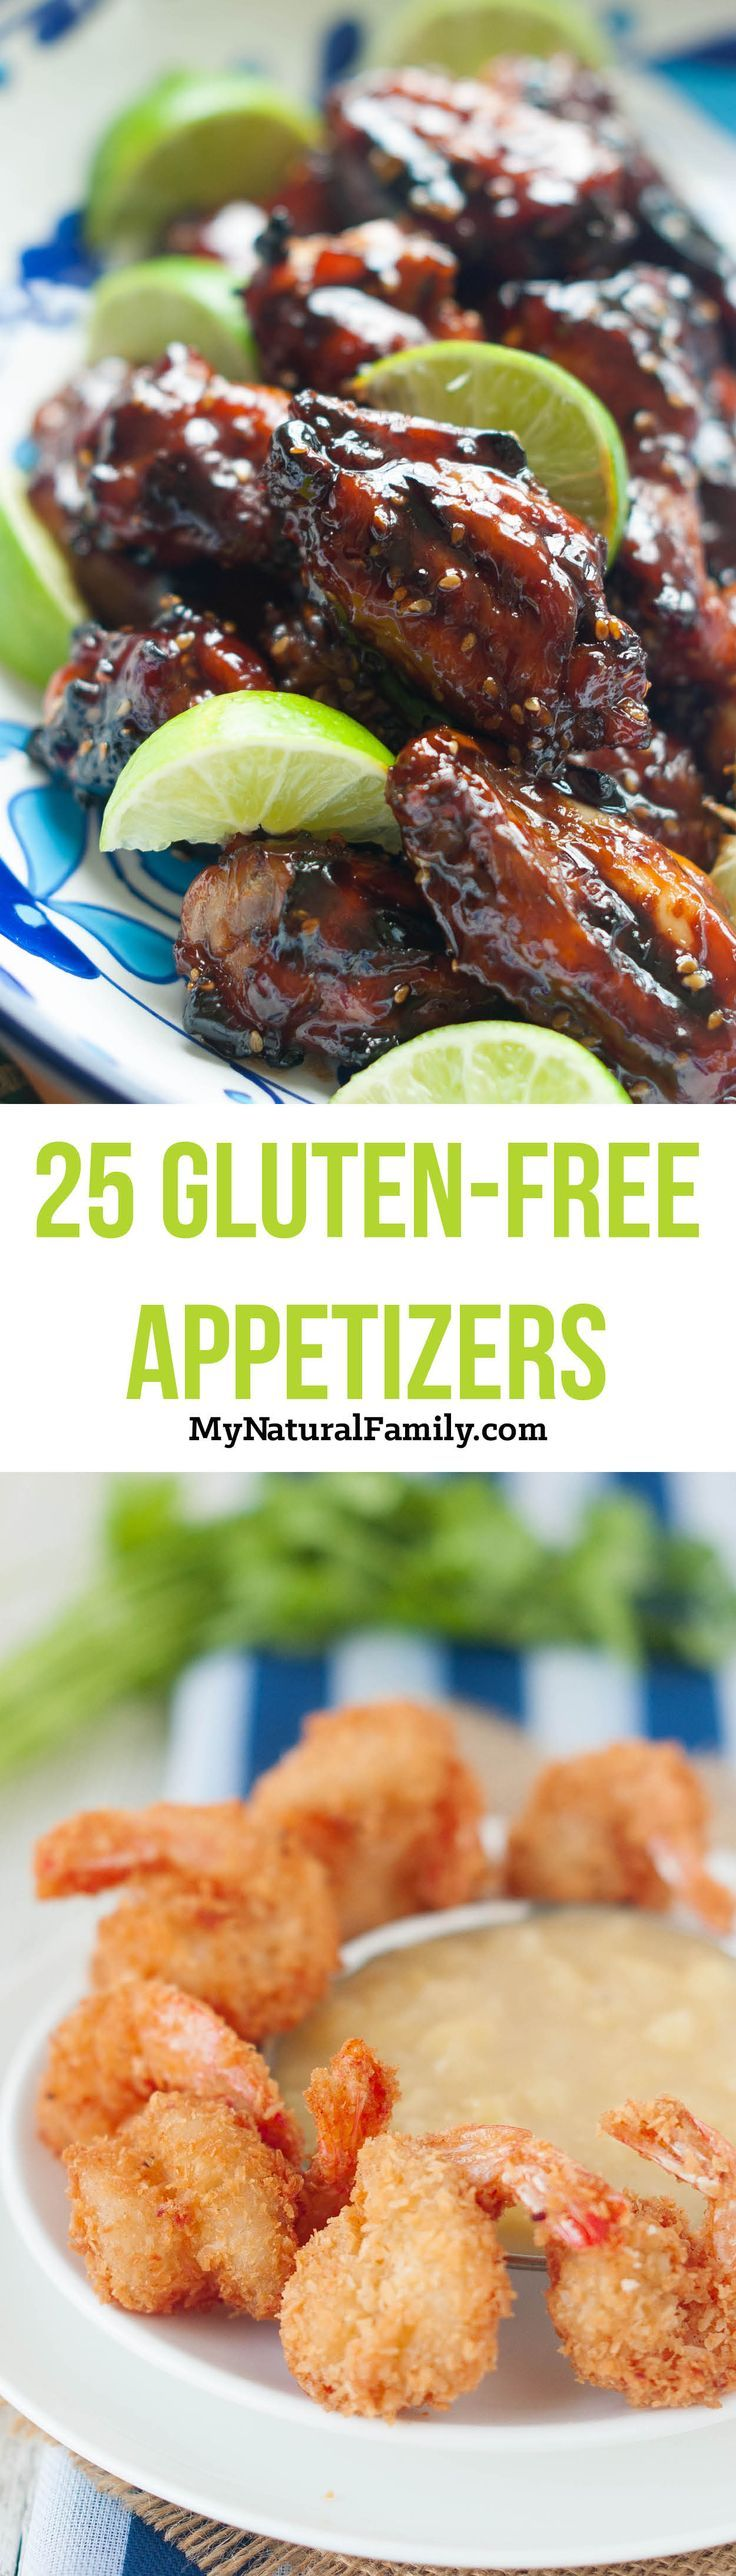 25 Gluten Free Appetizer Recipes - I love this list cause I can make food I can eat at parties and other people won't ask questions about why I'm not eating.